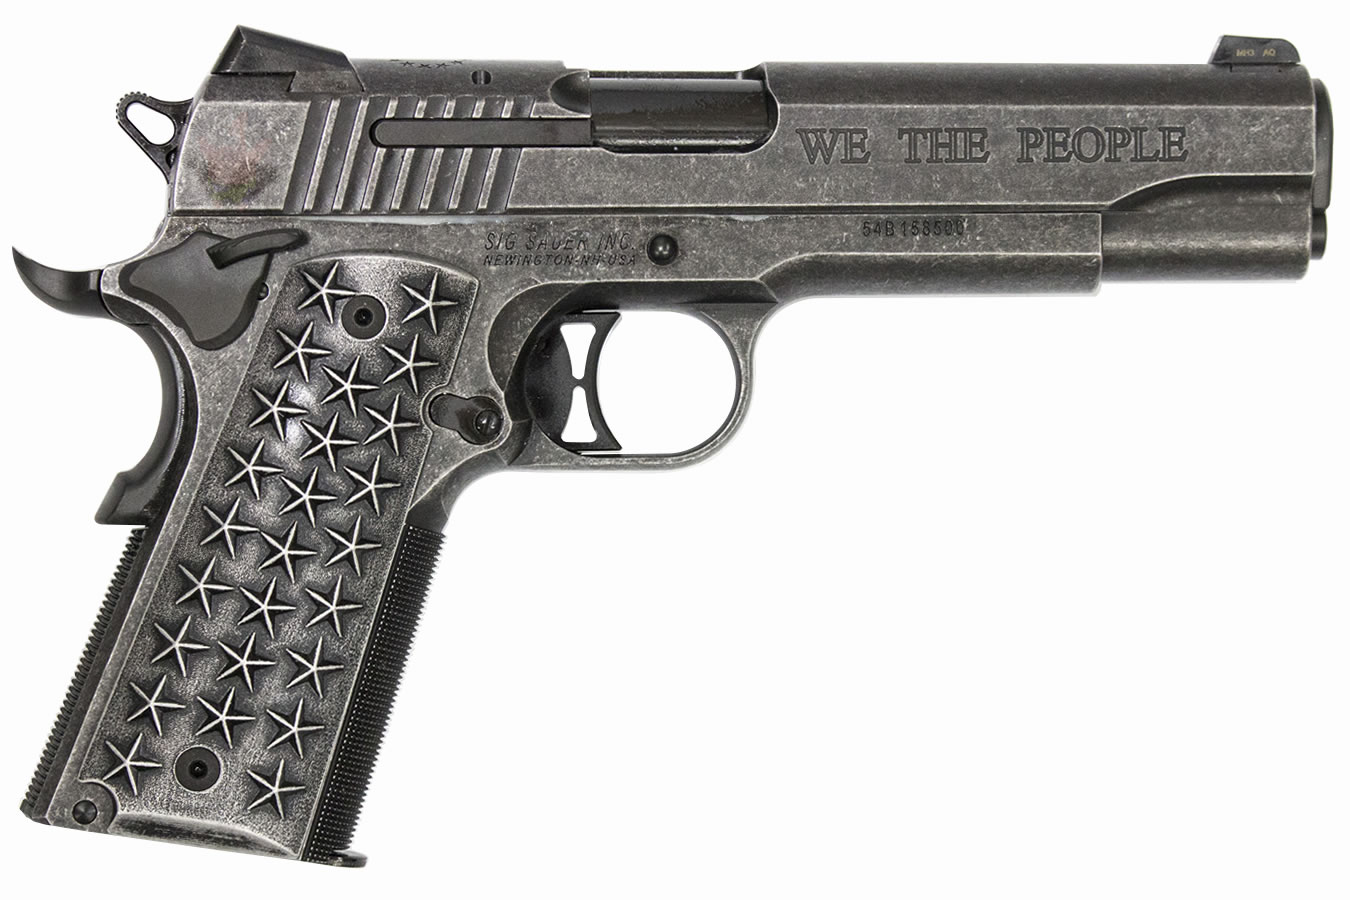 1911 45ACP WE THE PEOPLE SPECIAL EDITION